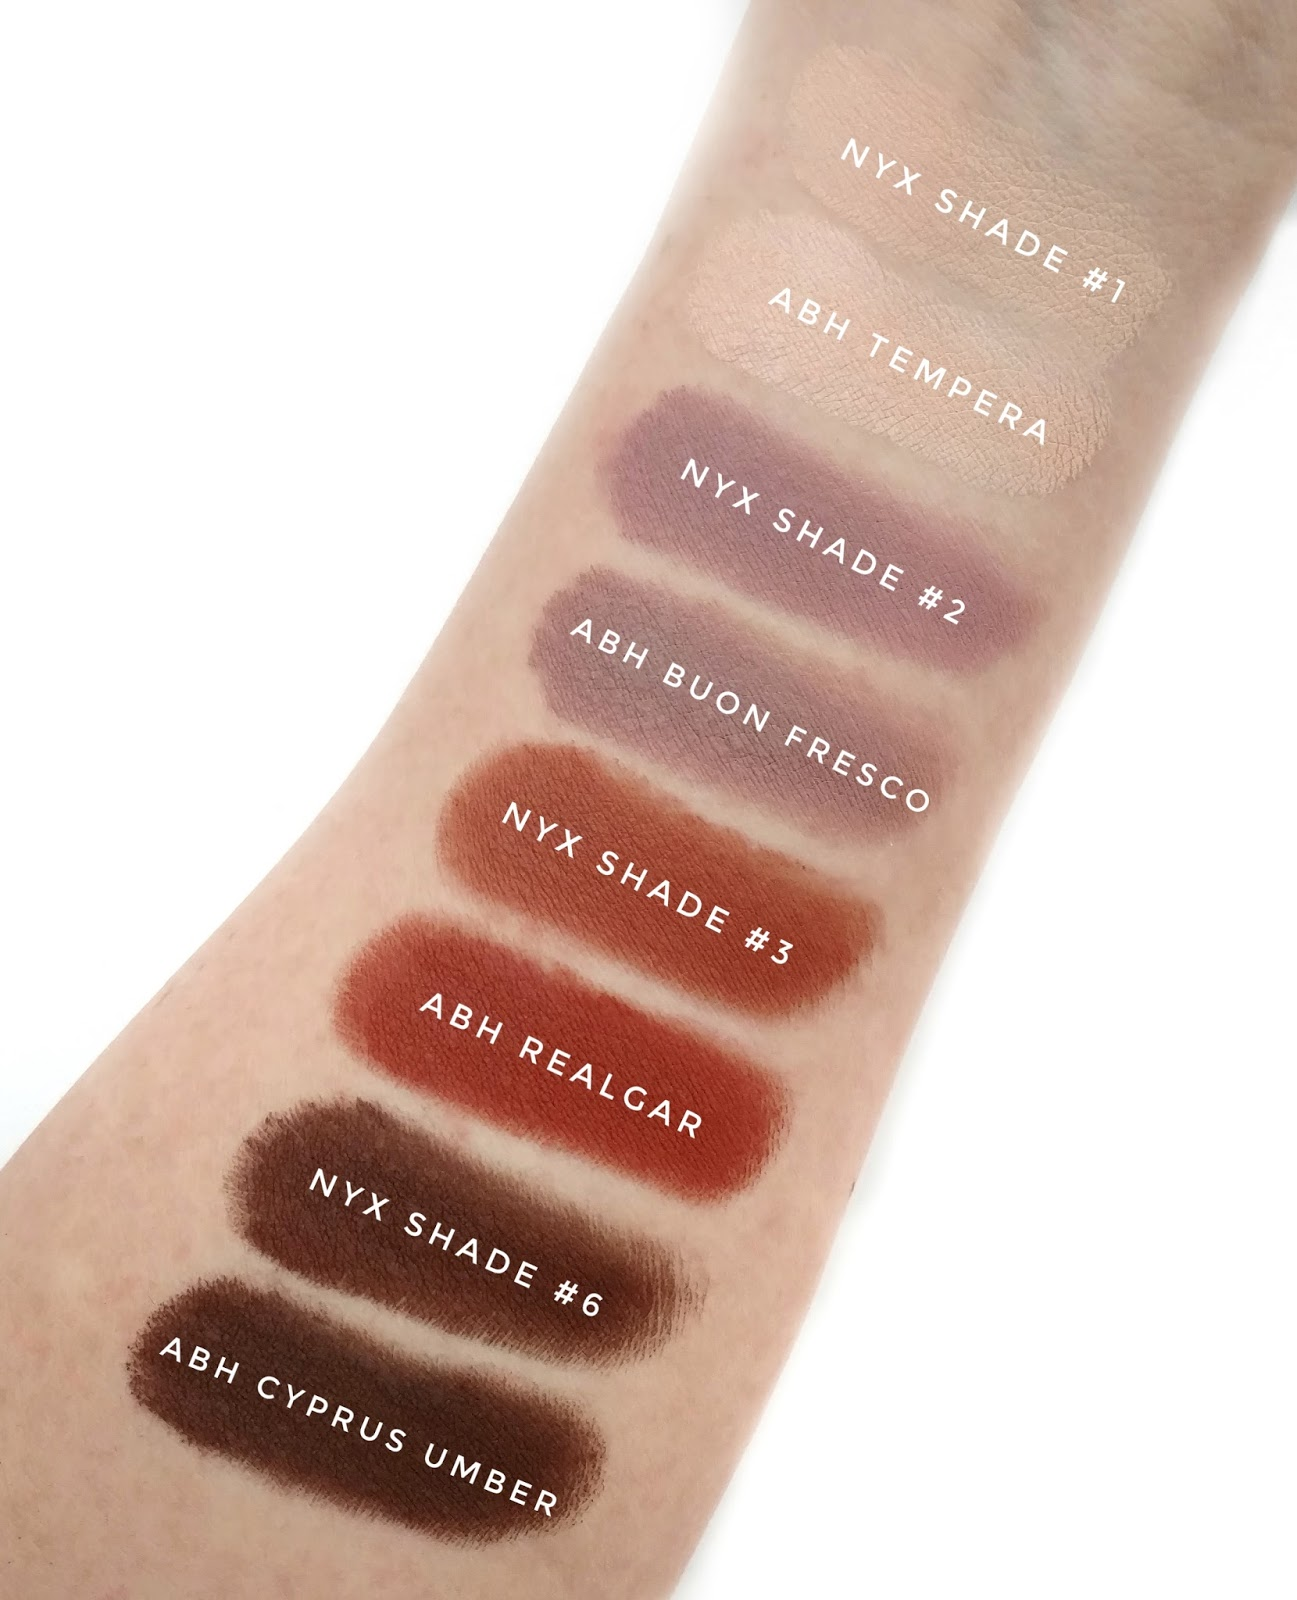 nyx lid lingerie shadow palette review swatches. Black Bedroom Furniture Sets. Home Design Ideas